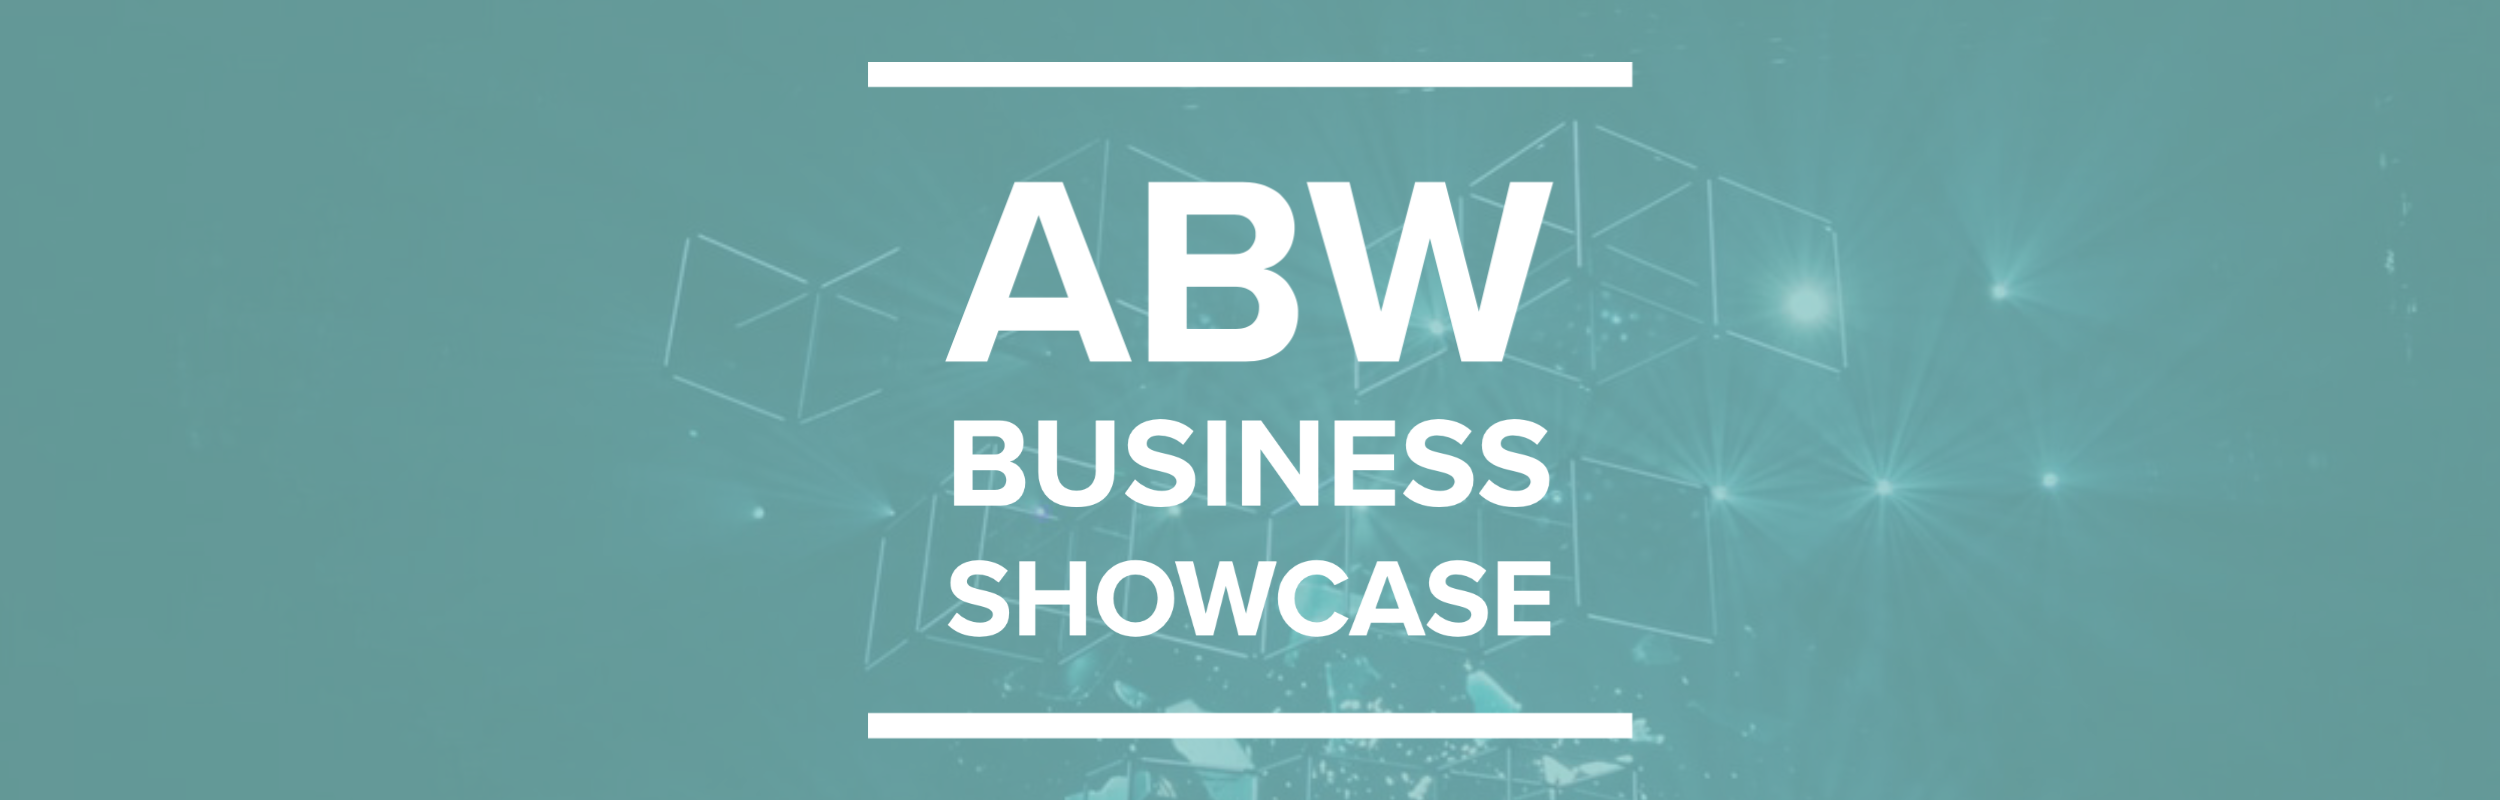 ABW Business Showcase